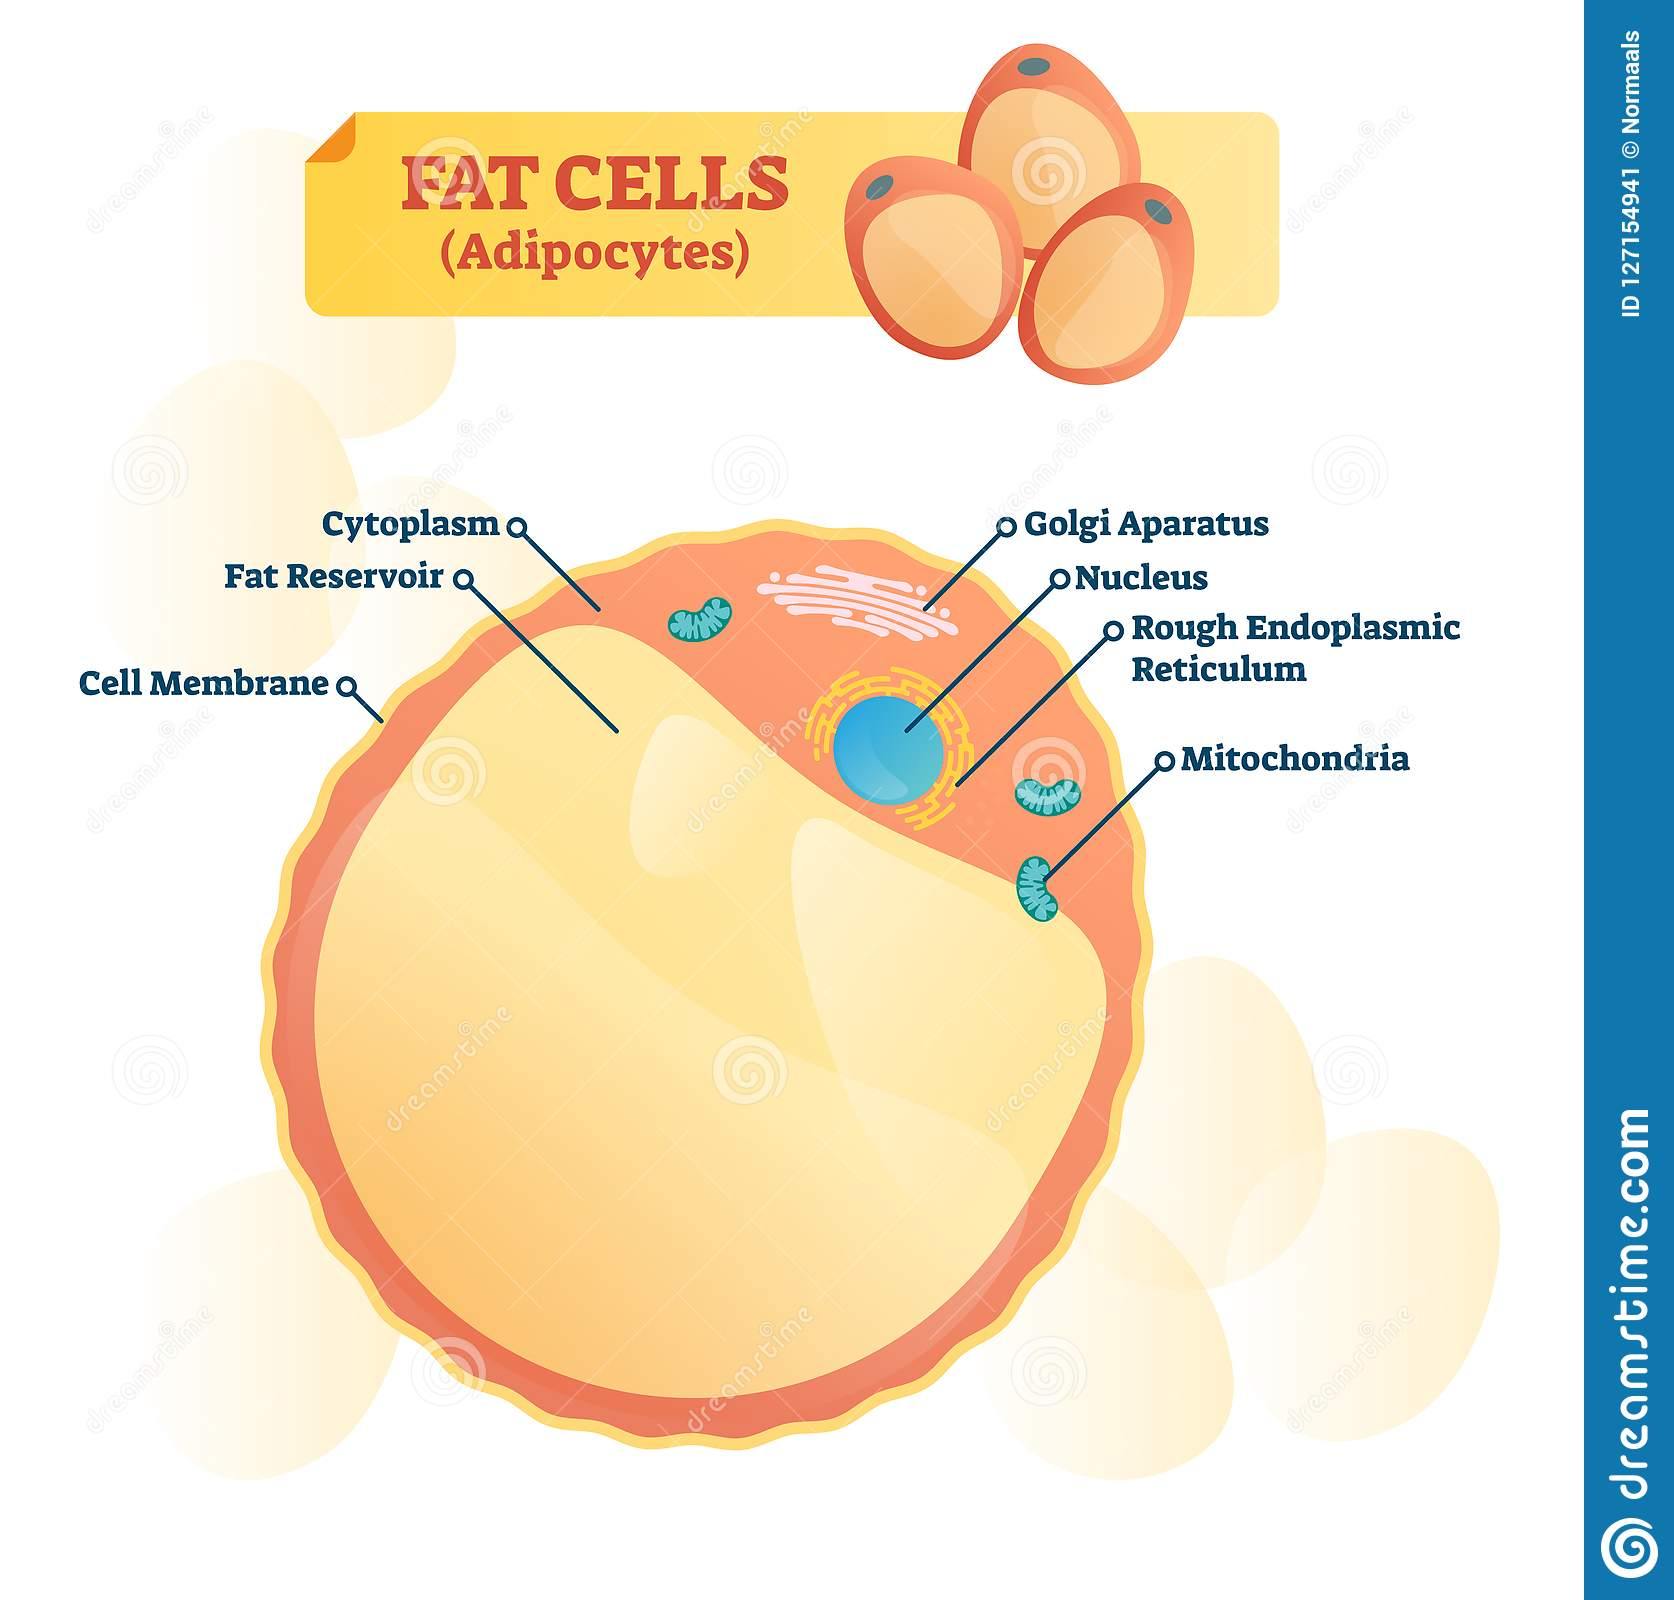 Image of: Plant Cell Fat Cell Structure Vector Illustration Labeled Anatomical Adipocyte Diagram Tropicalspaco Fat Cell Structure Vector Illustration Labeled Anatomical Adipocyte